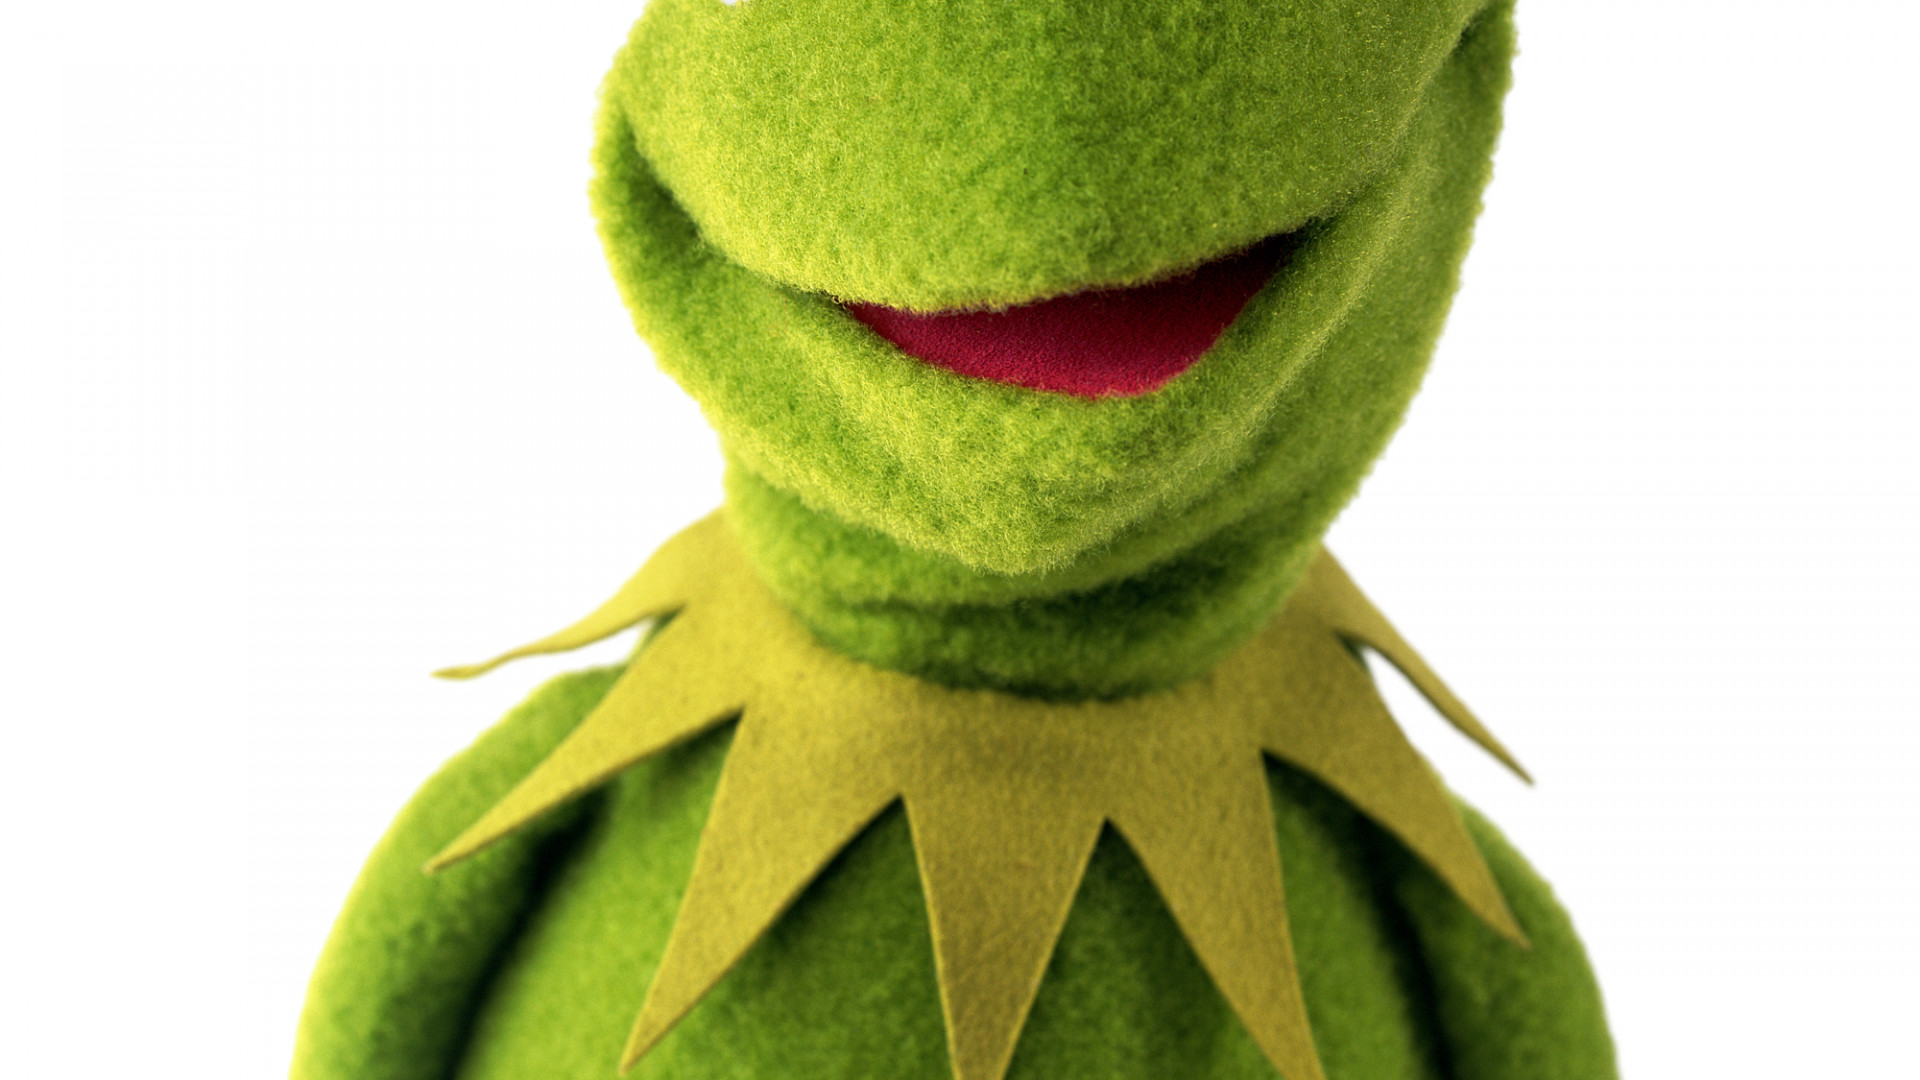 Voice change coming for Kermit The Frog!